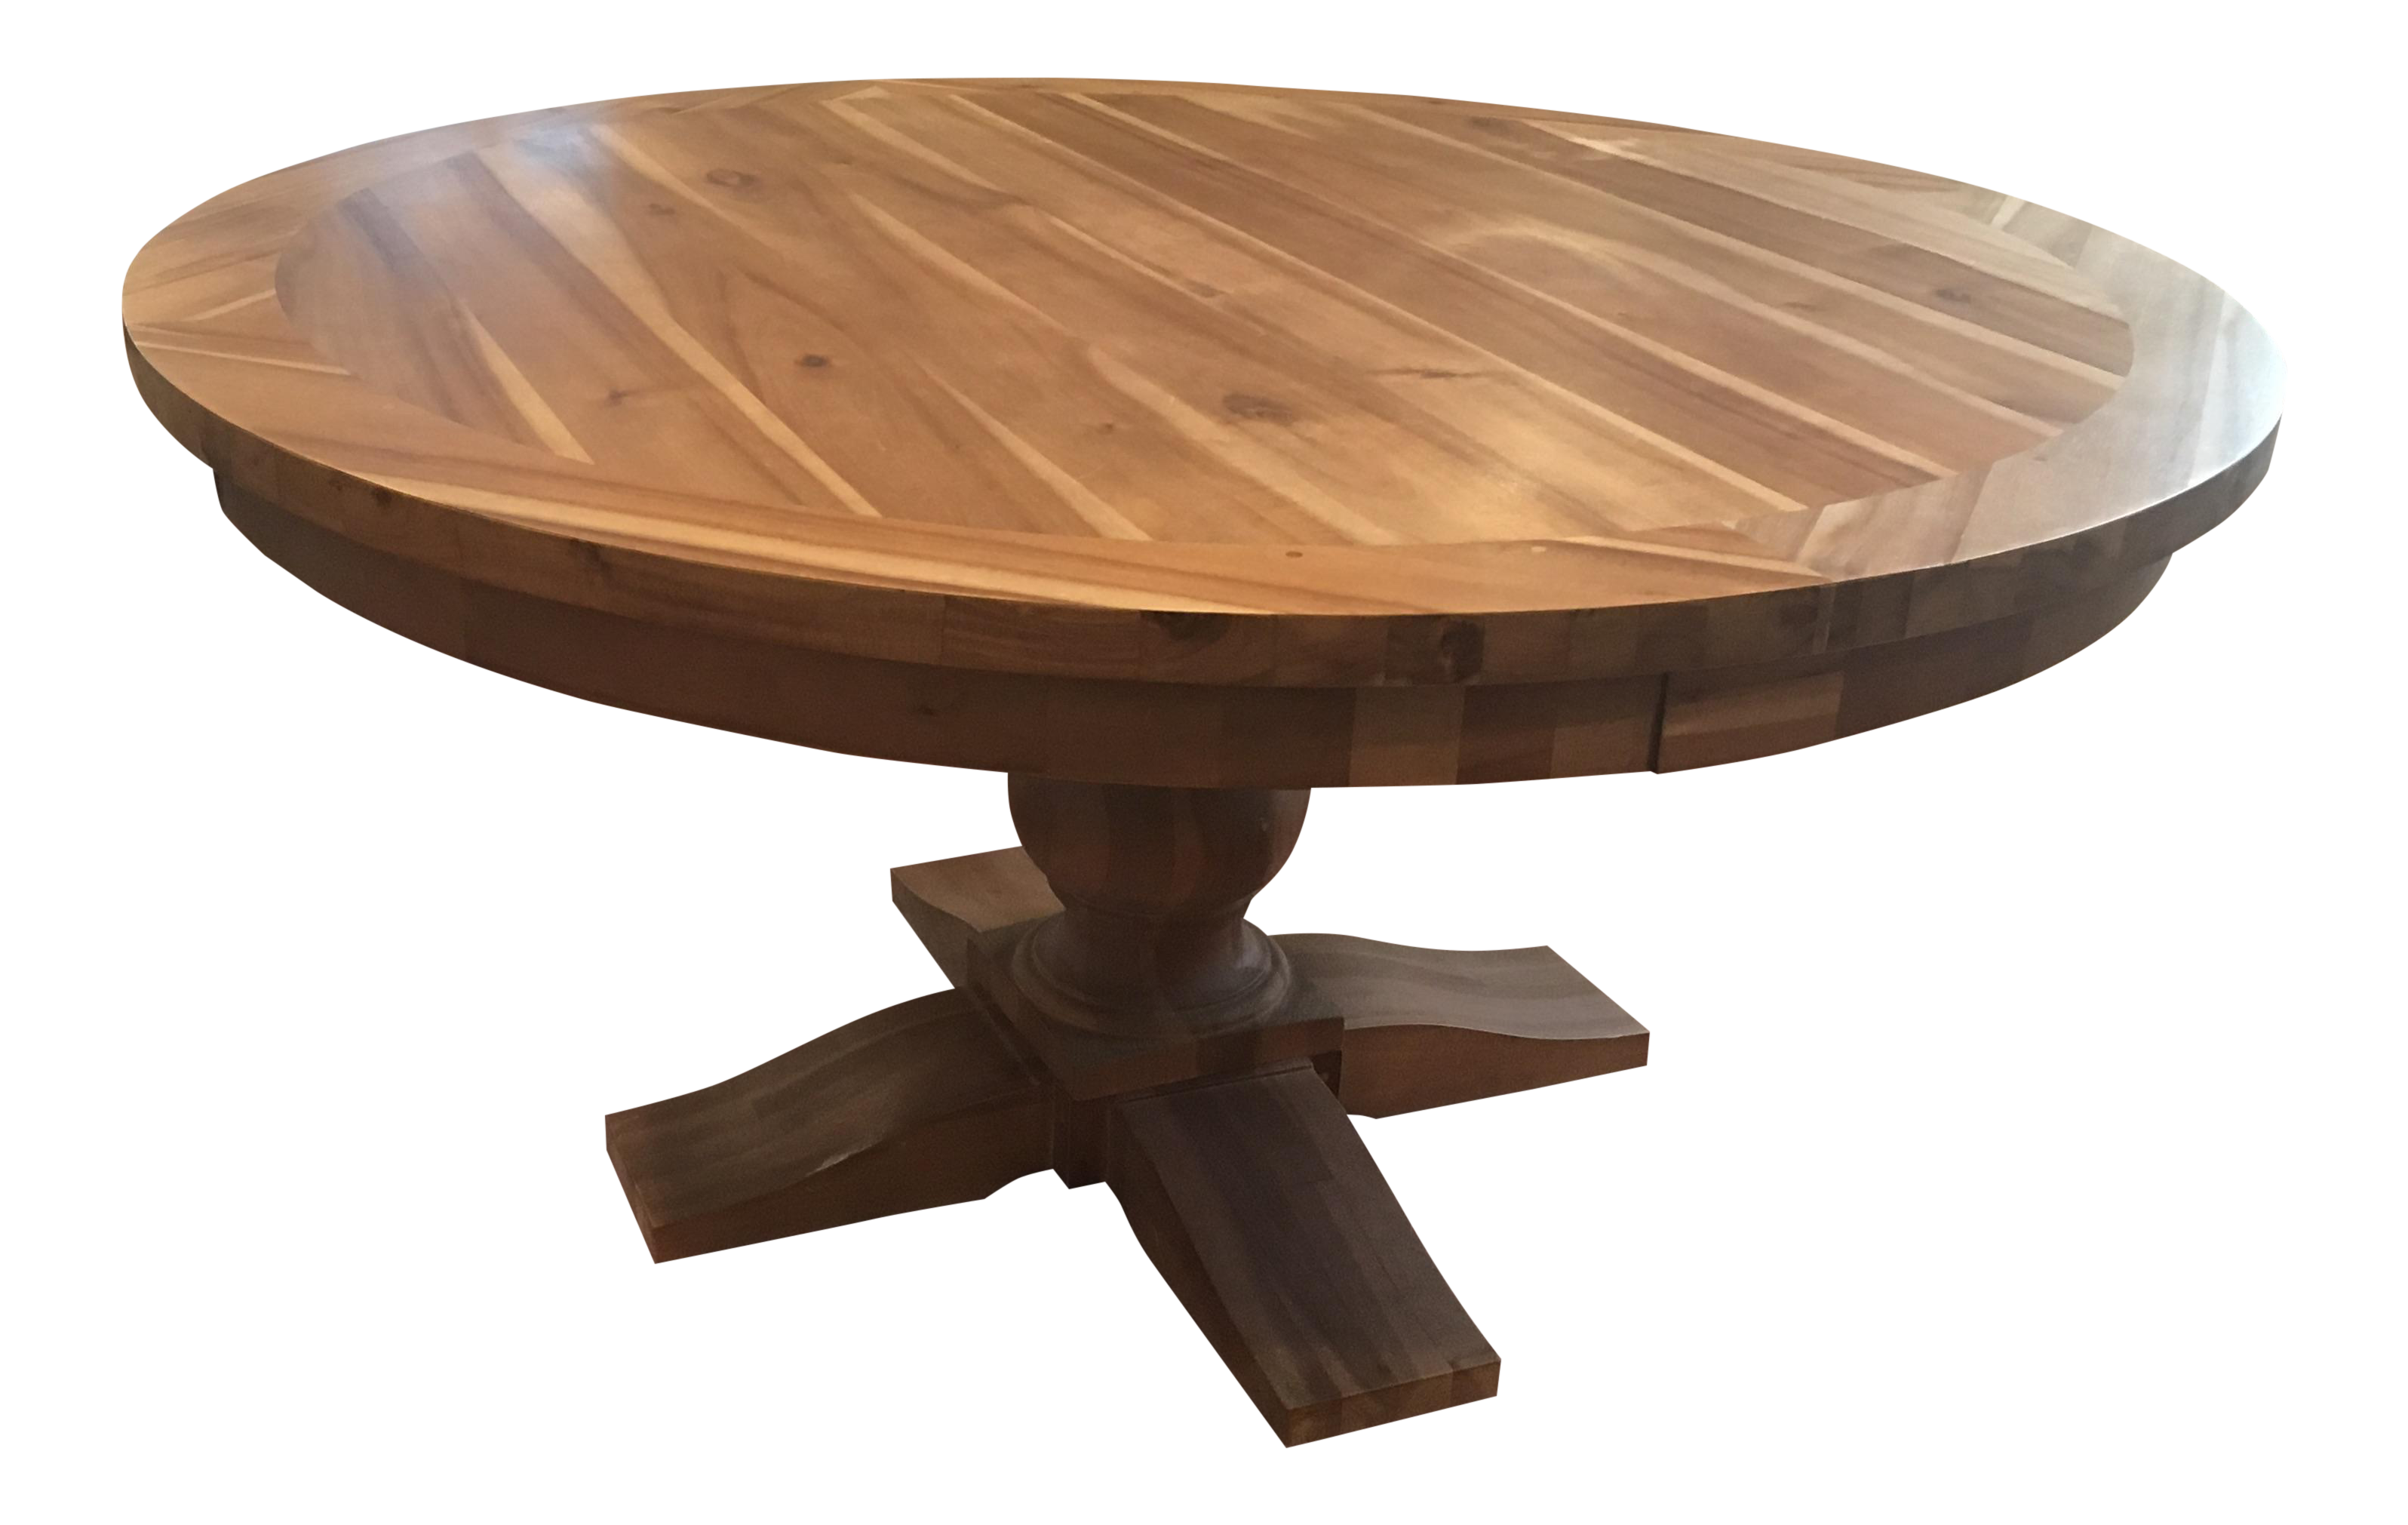 Restoration Hardware Round Dining Table Chairish : restoration hardware round dining table 3886aspectfitampwidth640ampheight640 from www.chairish.com size 640 x 640 jpeg 23kB